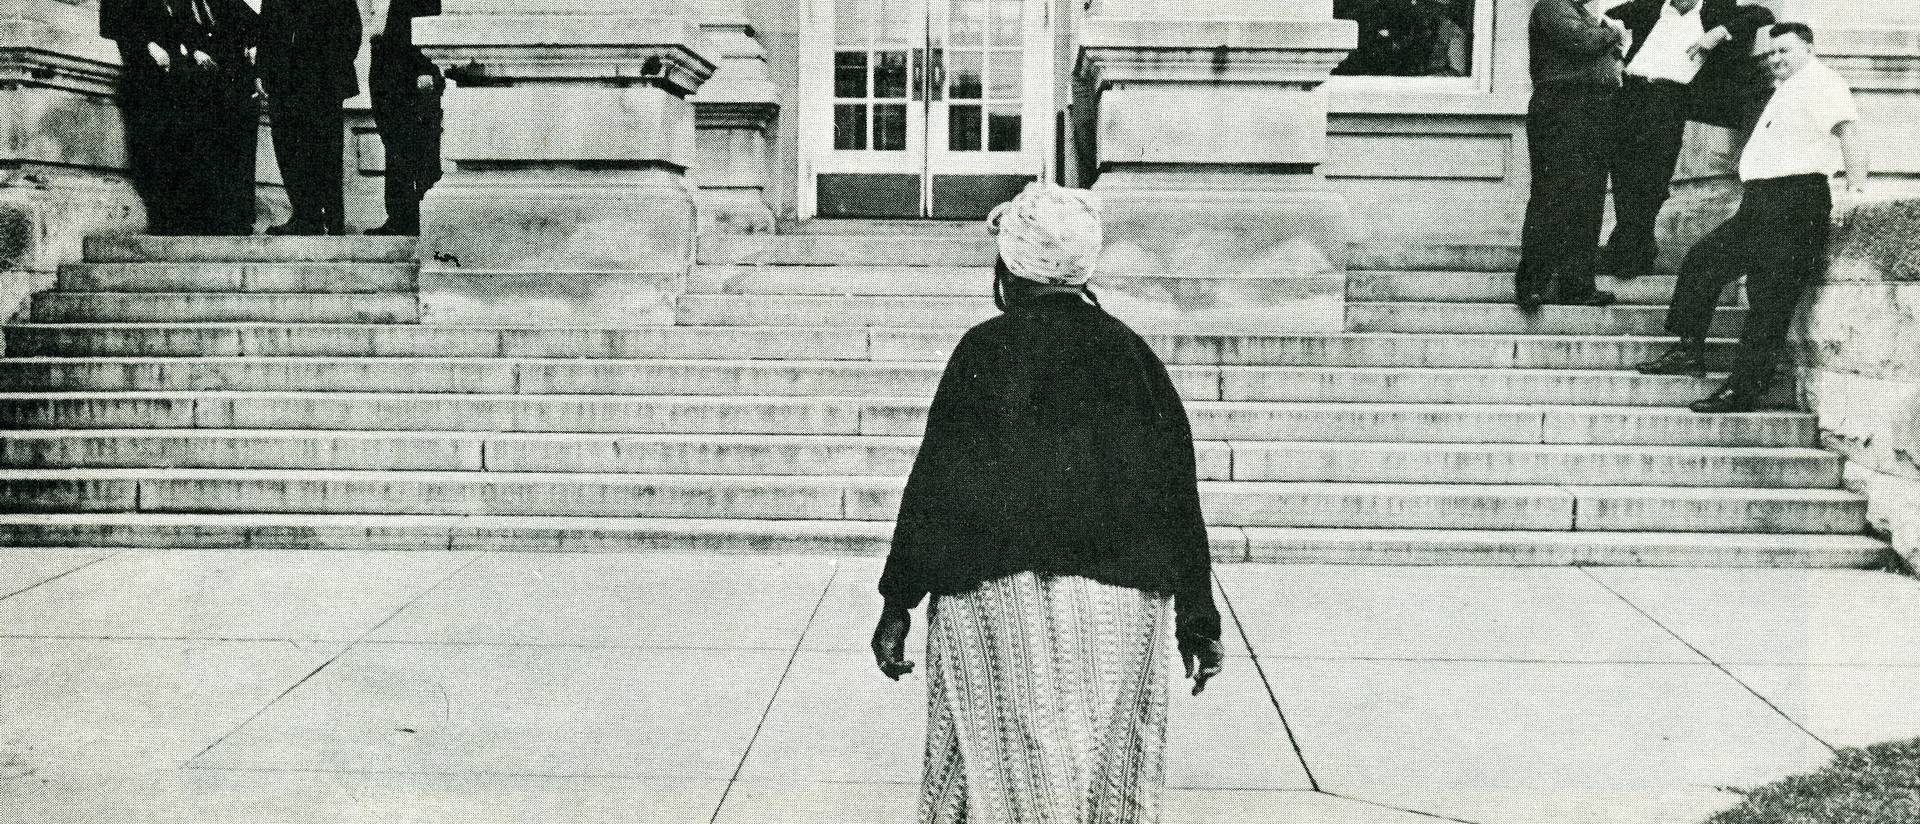 Solitary woman approaches courthouse